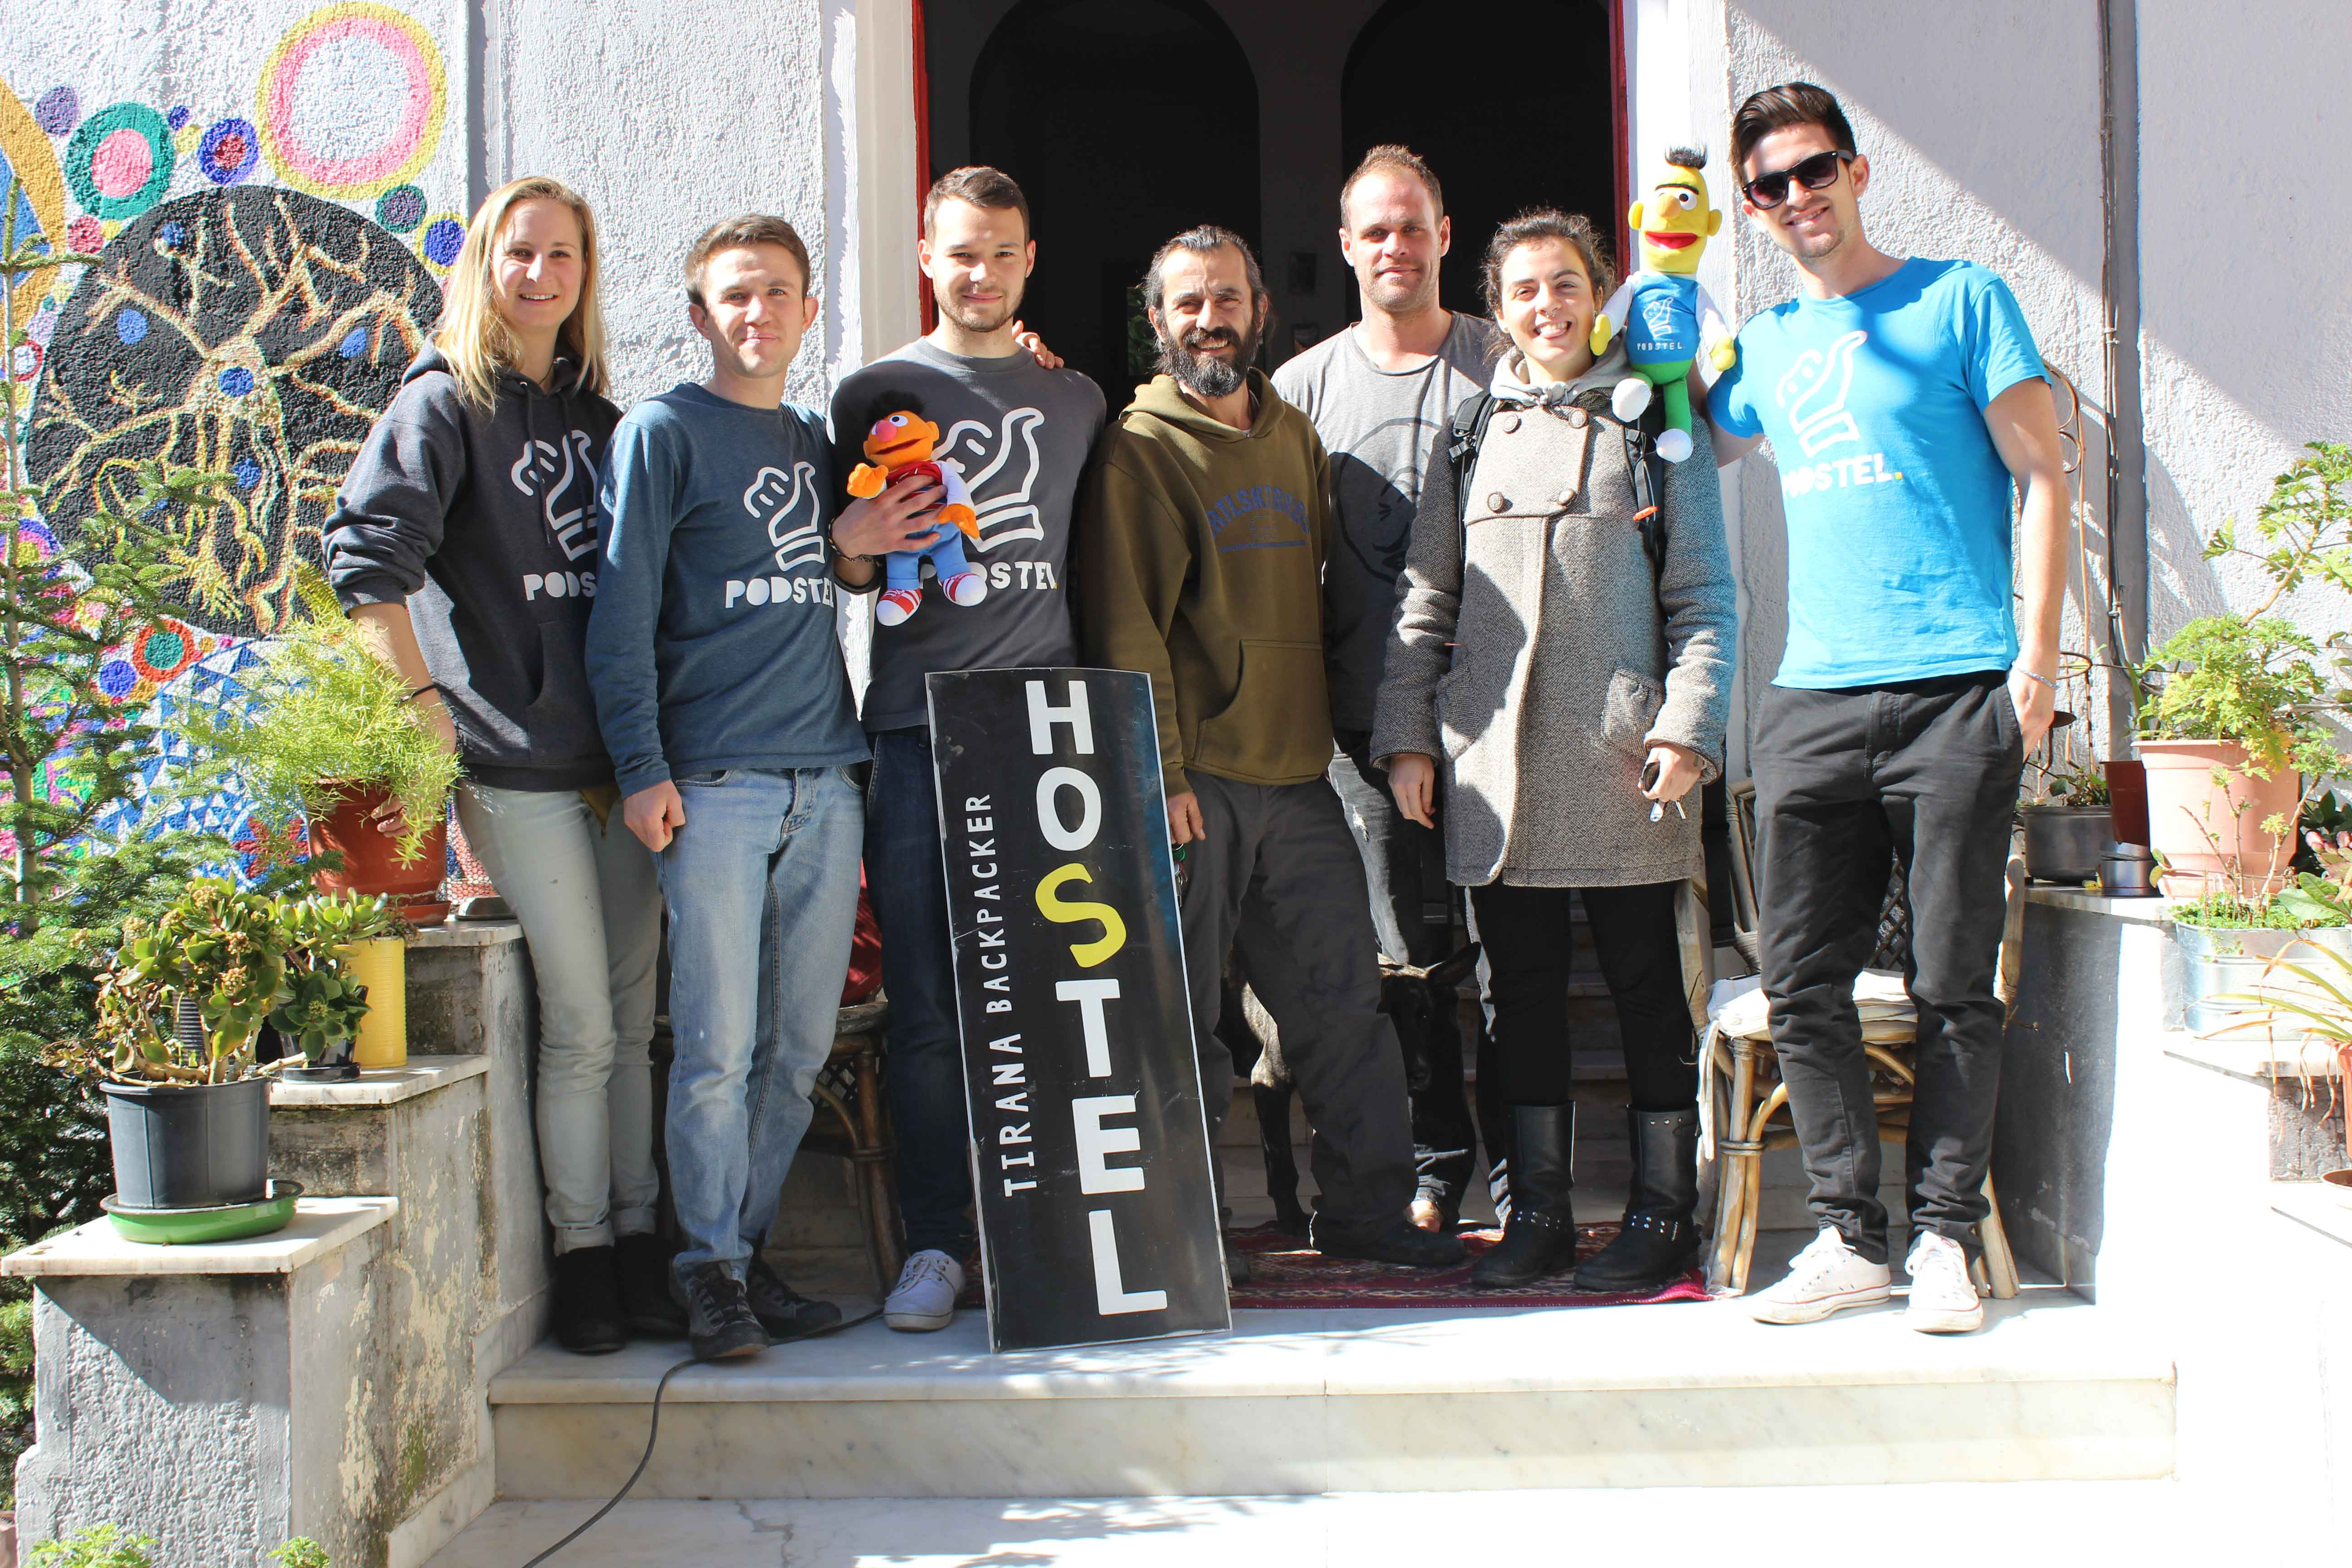 The crew behind the hostel Podstel